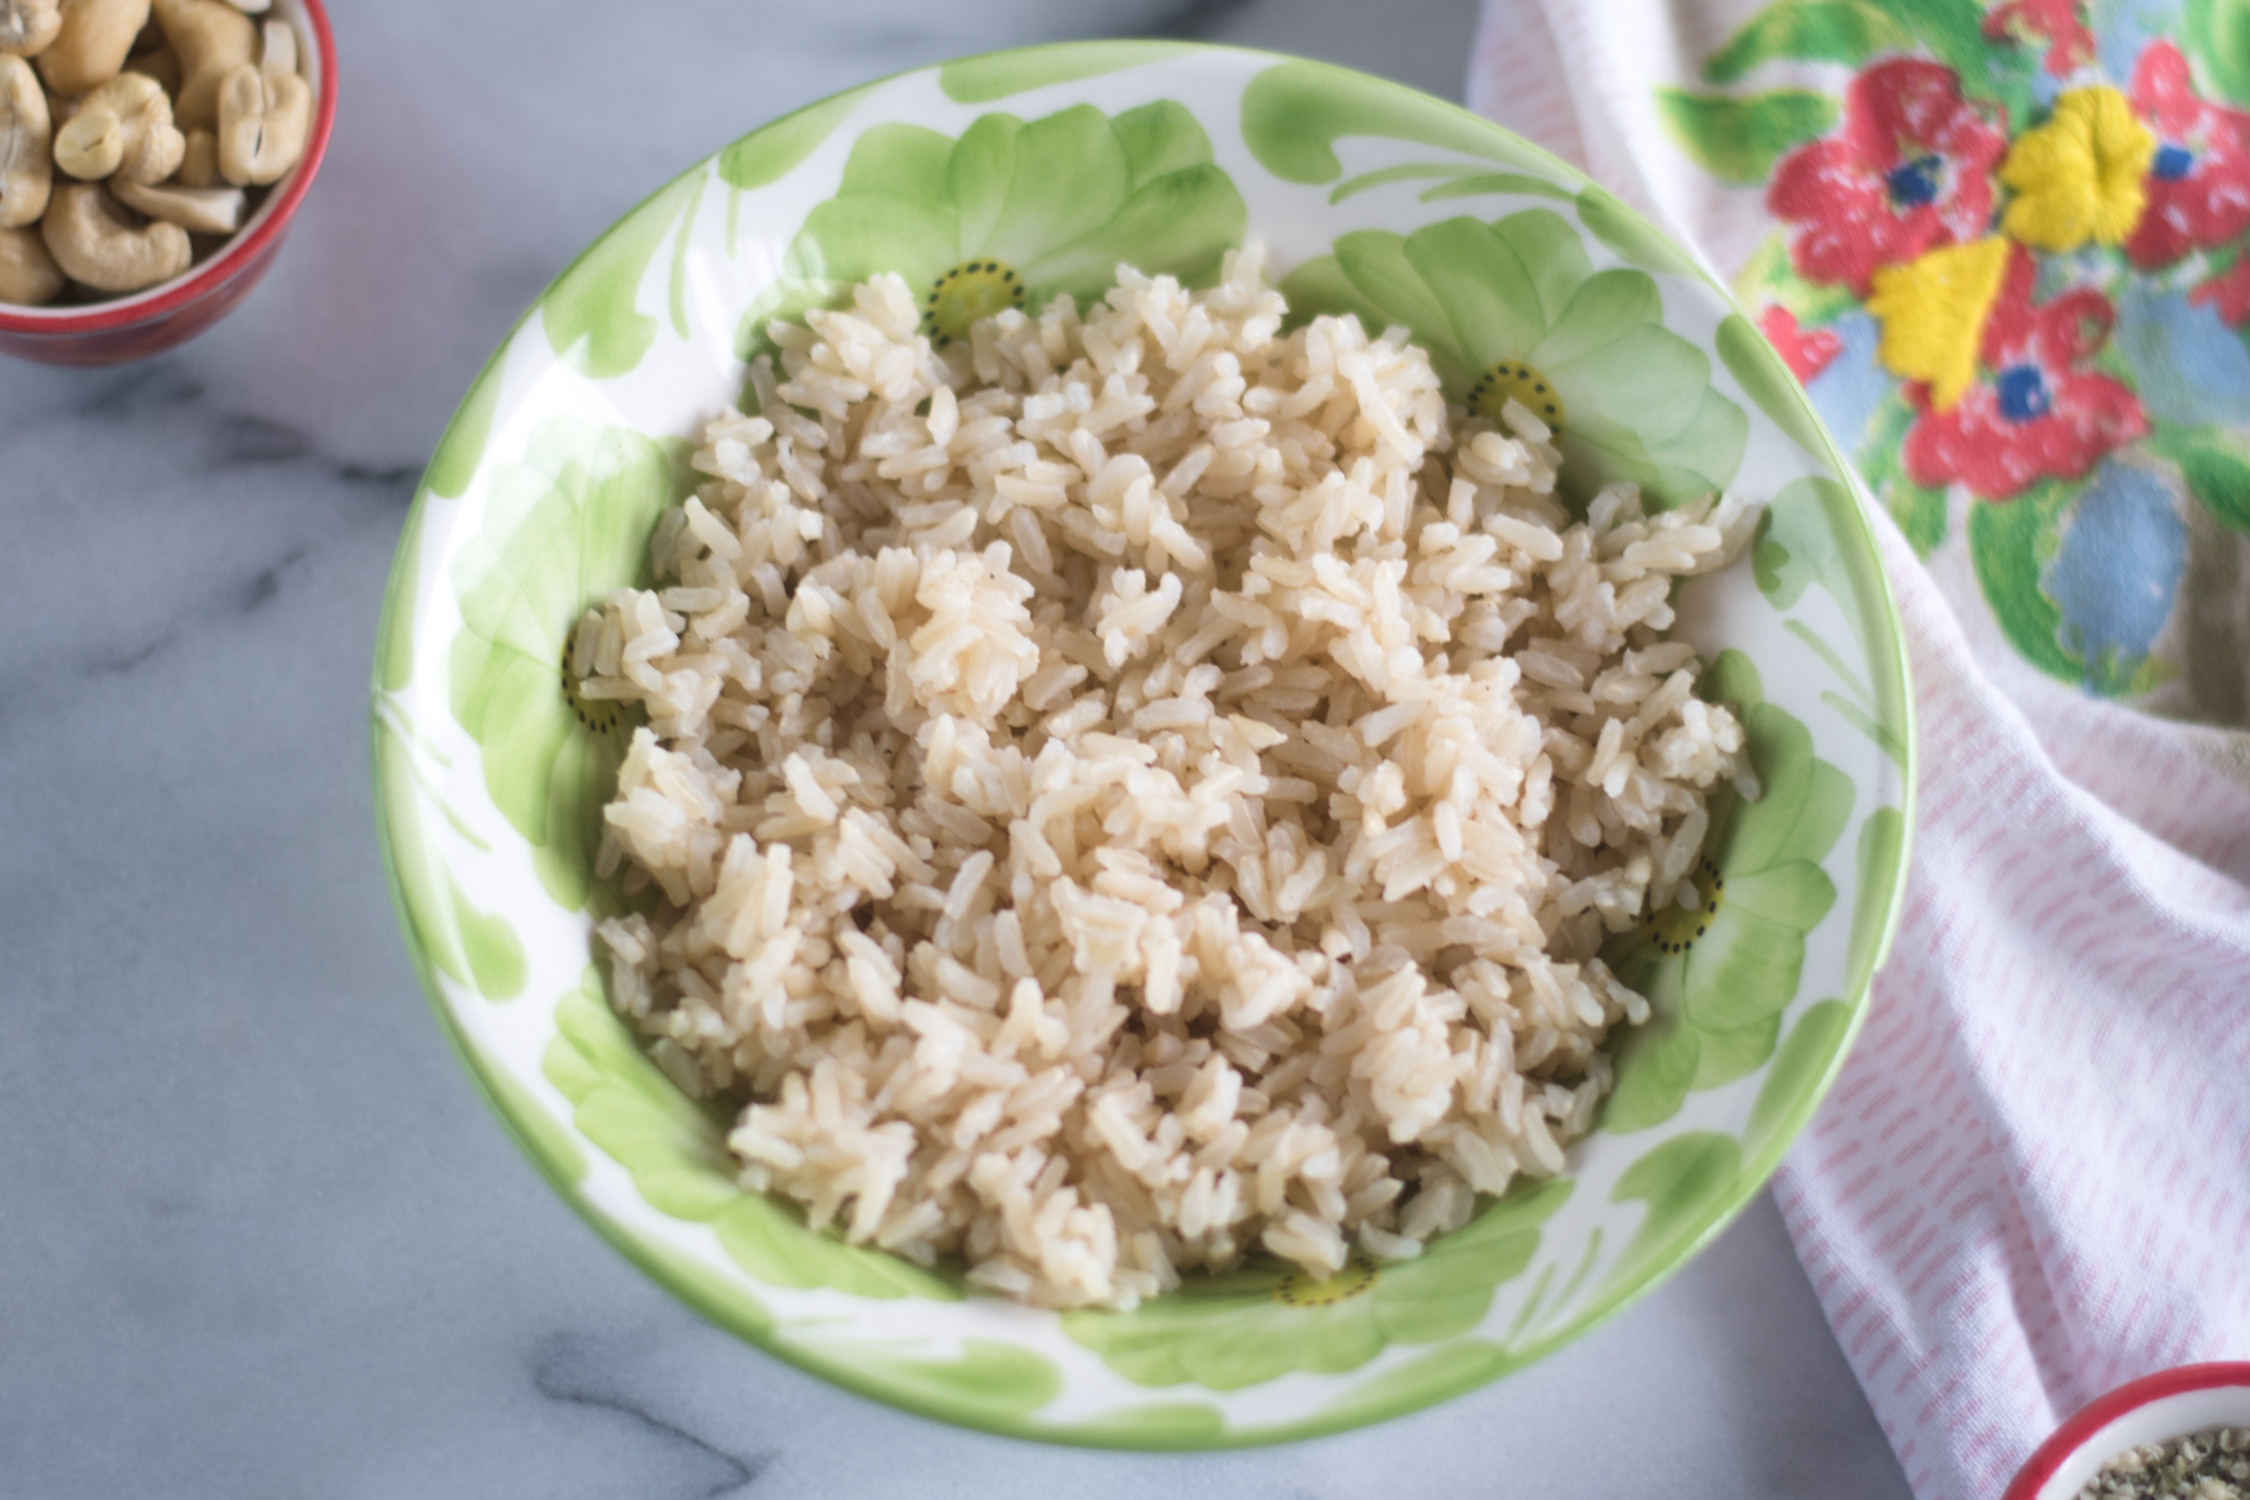 Transport yourself to a tropical island with this A Touch of the Tropics Rice Bowl!